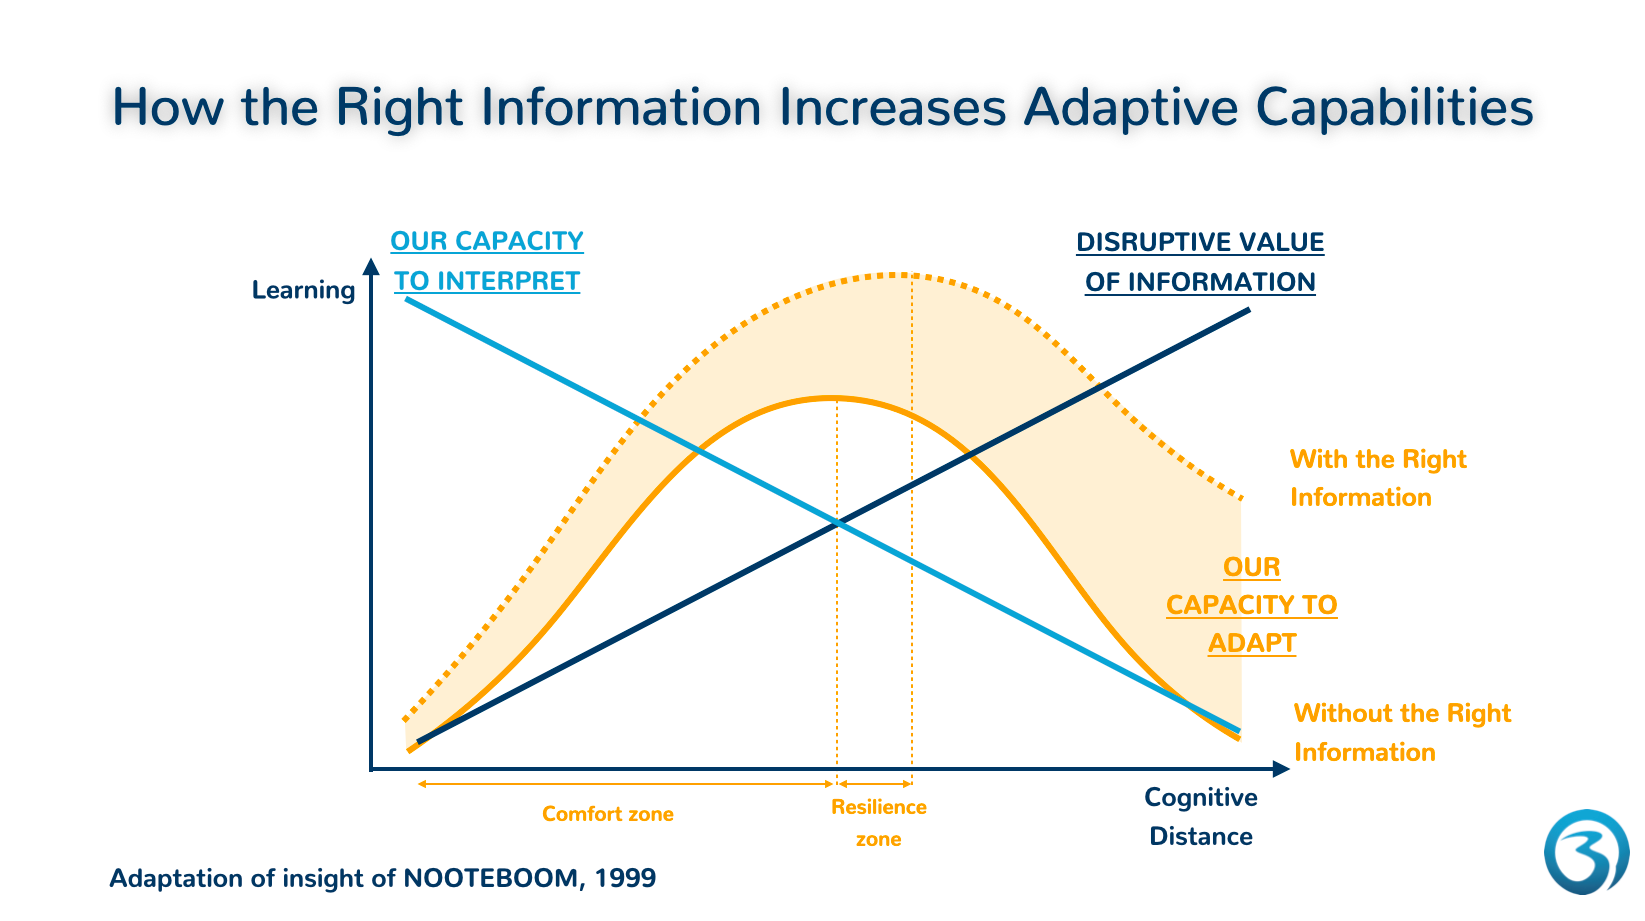 Graph showing how the right information increases adaptive capabilities